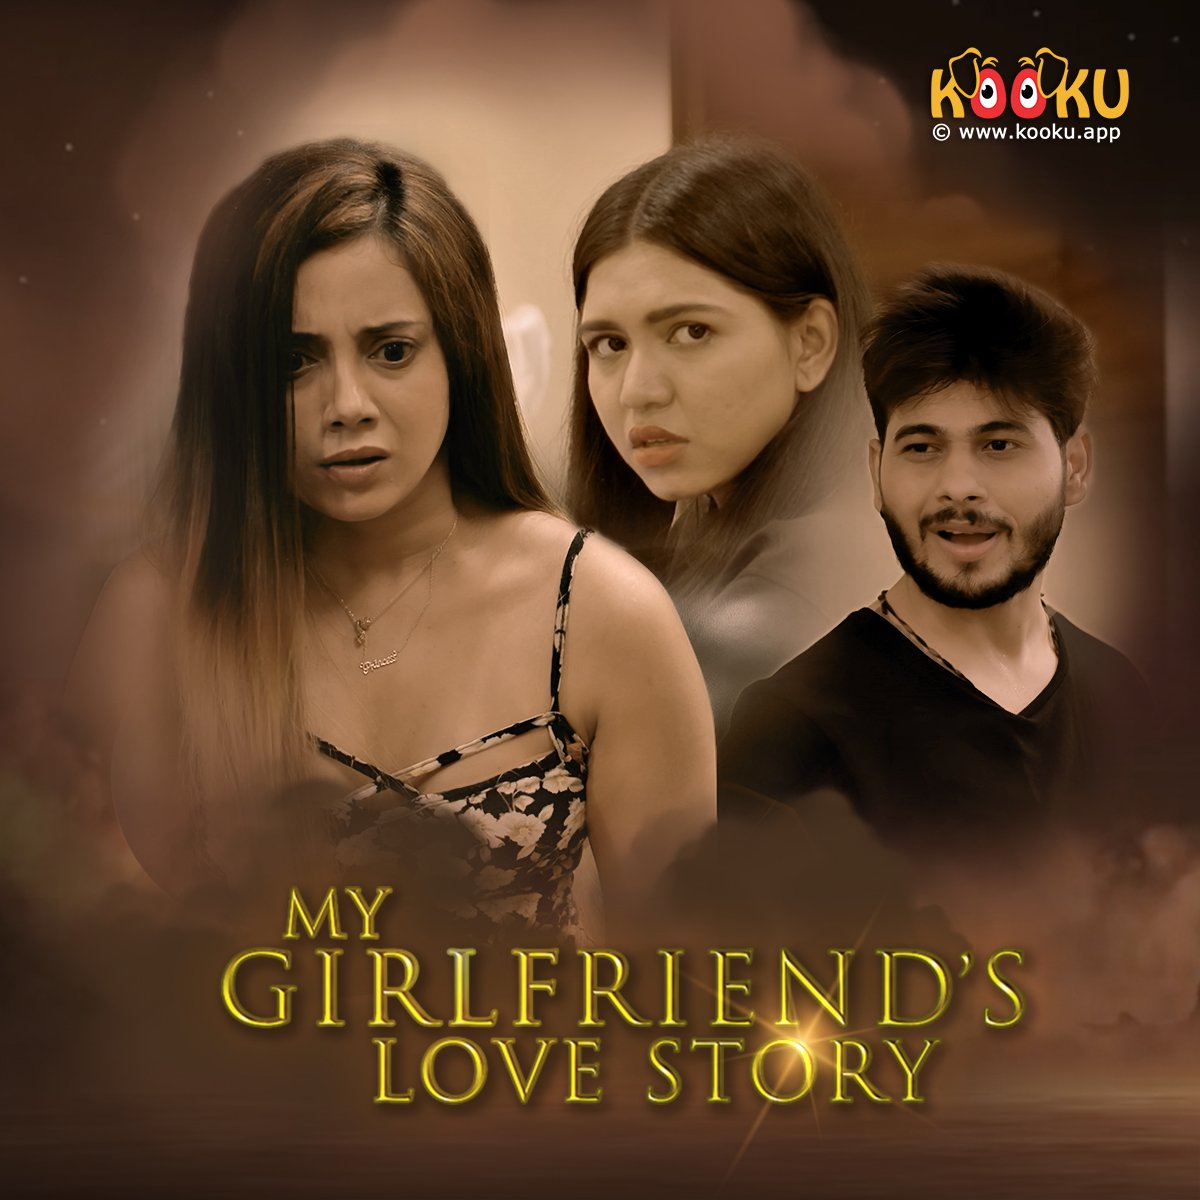 [18+]My Girlfriends Love Story (2020) KooKu Hindi Season 1 Complete 720p UNRATED HDRip Download